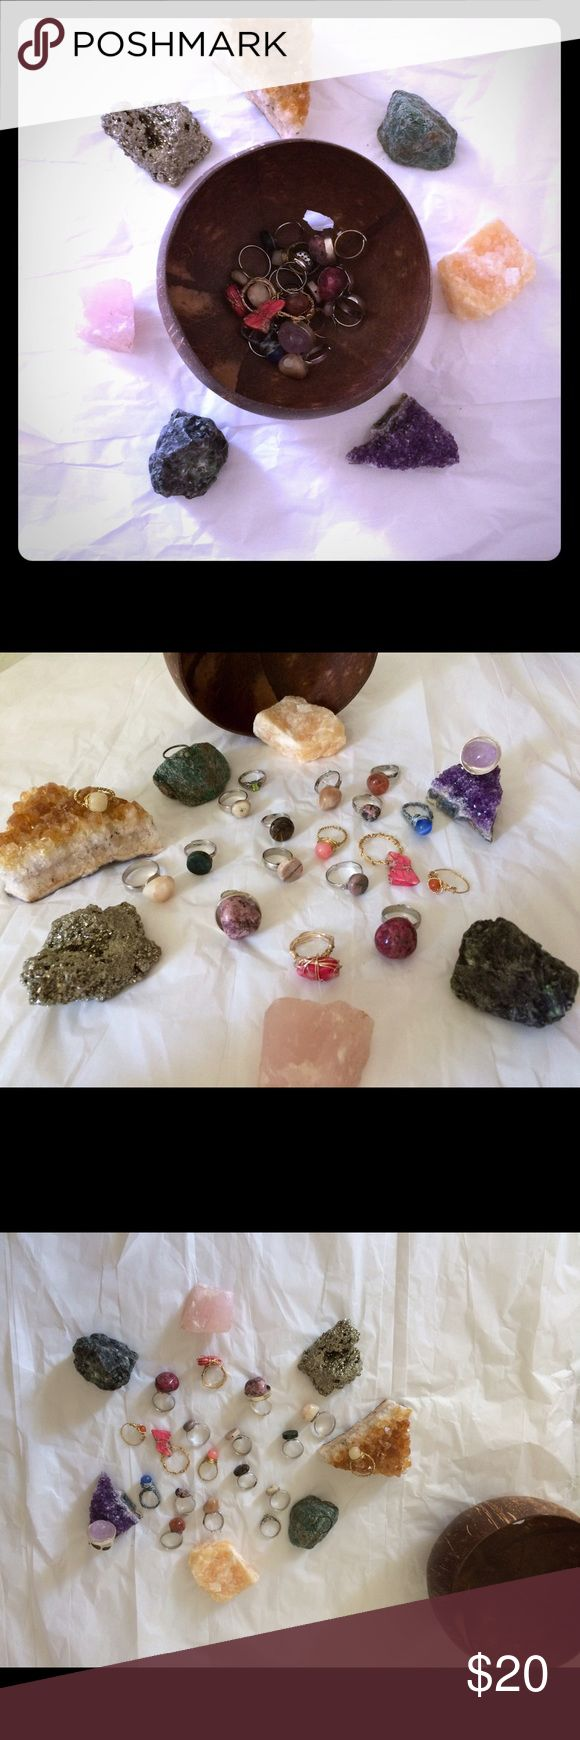 SPIRITUAL 8 MYSTERY RING BUNDLE! NWT!  ALL GENUINE SEMI-PRECIOUS STONES THAT COME WITH RESPECTIVE MEANINGS!  Some are OS FITS ALL ADJUSTABLE BANDS, BUT PLEASE MESSAGE ME YOUR SIZE! Lala Motifs Jewelry Rings